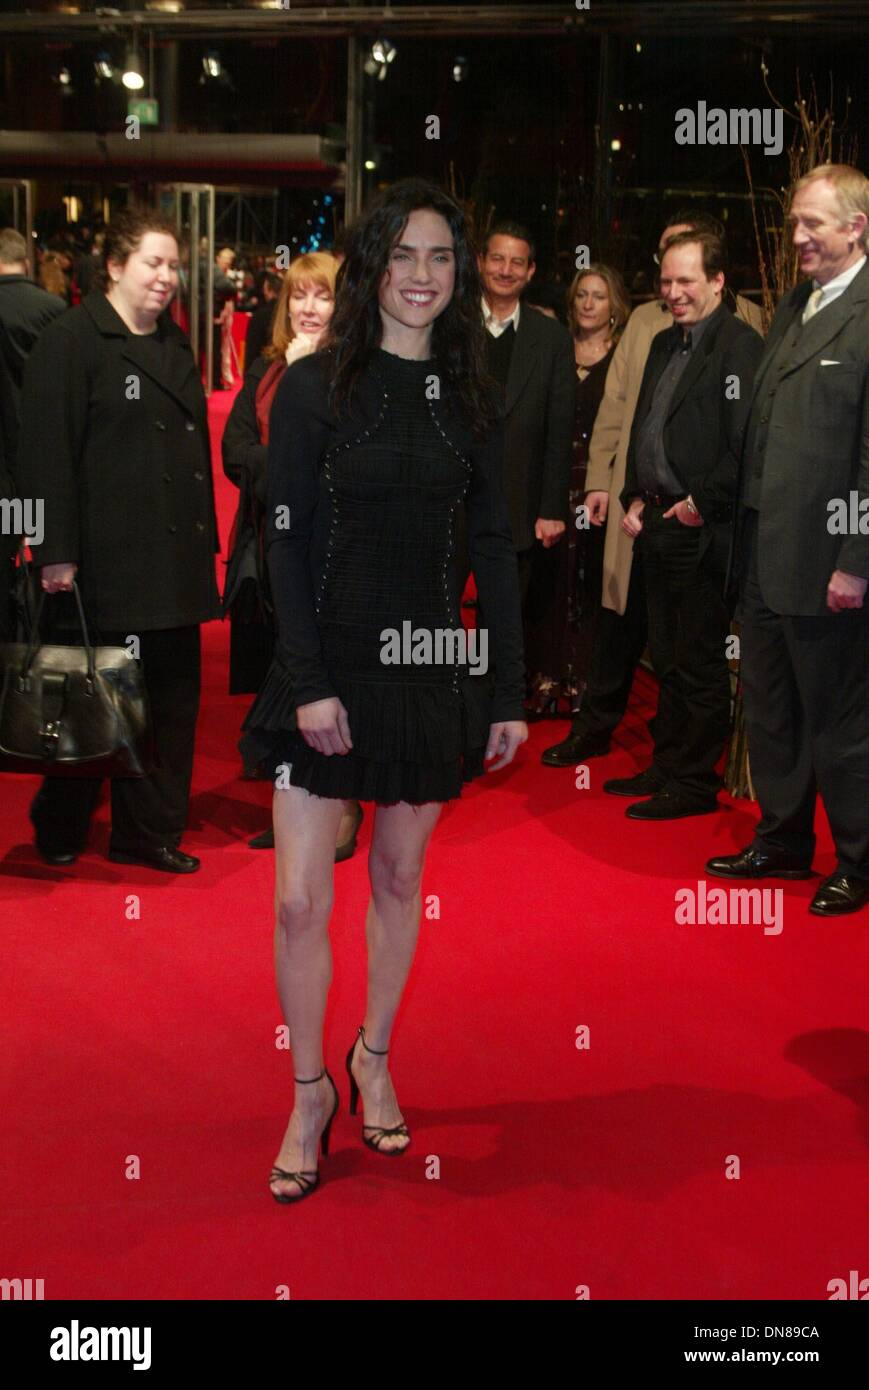 "12. Februar 2002 - Jennifer Connelly.at die Premiere von ""Beautiful Mind"". Filmfest Berlin, 2/12.© Alec Michael 2002.All Rechte vorbehalten (Kredit-Bild: © Globe Photos/ZUMAPRESS.com) Stockbild"